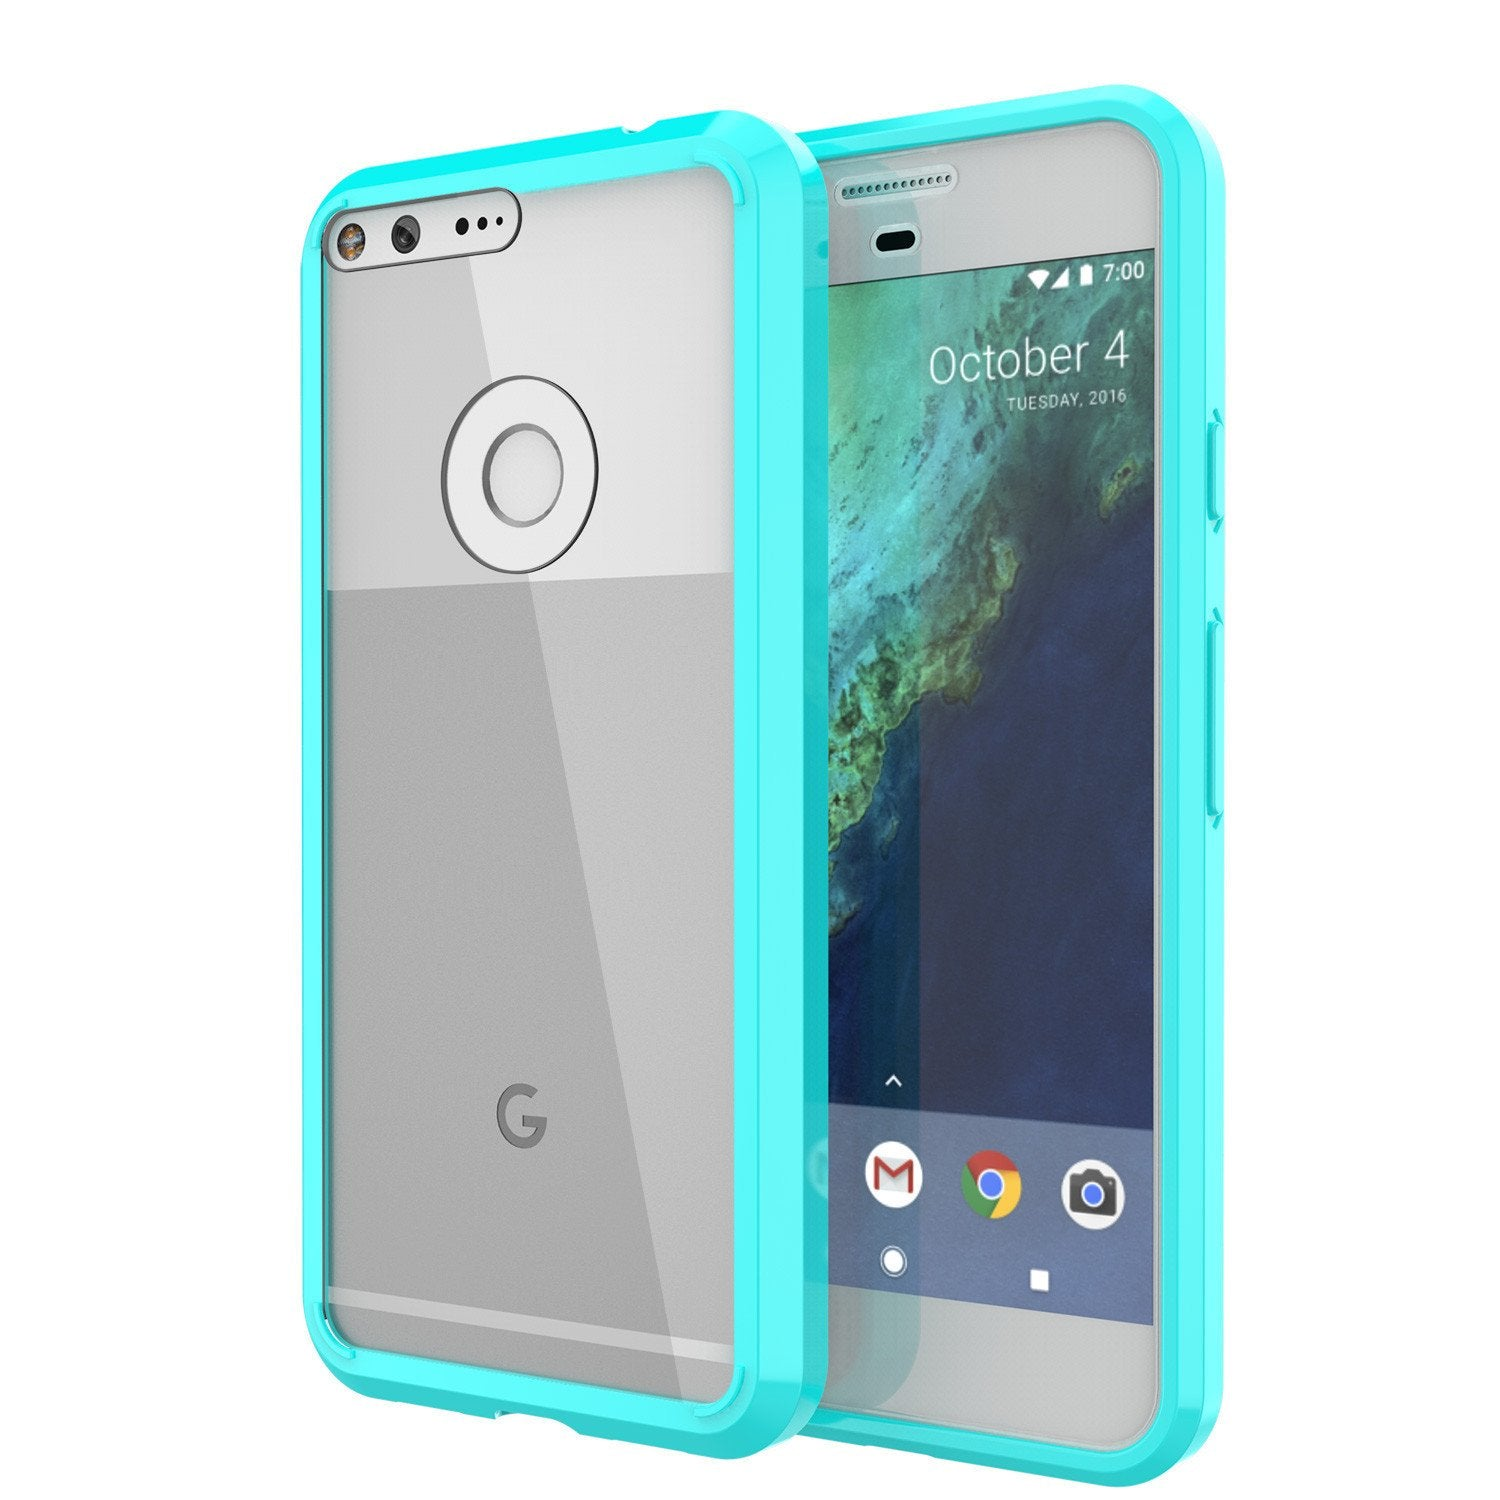 Google Pixel XL Case Punkcase® LUCID 2.0 Teal Series w/ PUNK SHIELD Glass Screen Protector | Ultra Fit